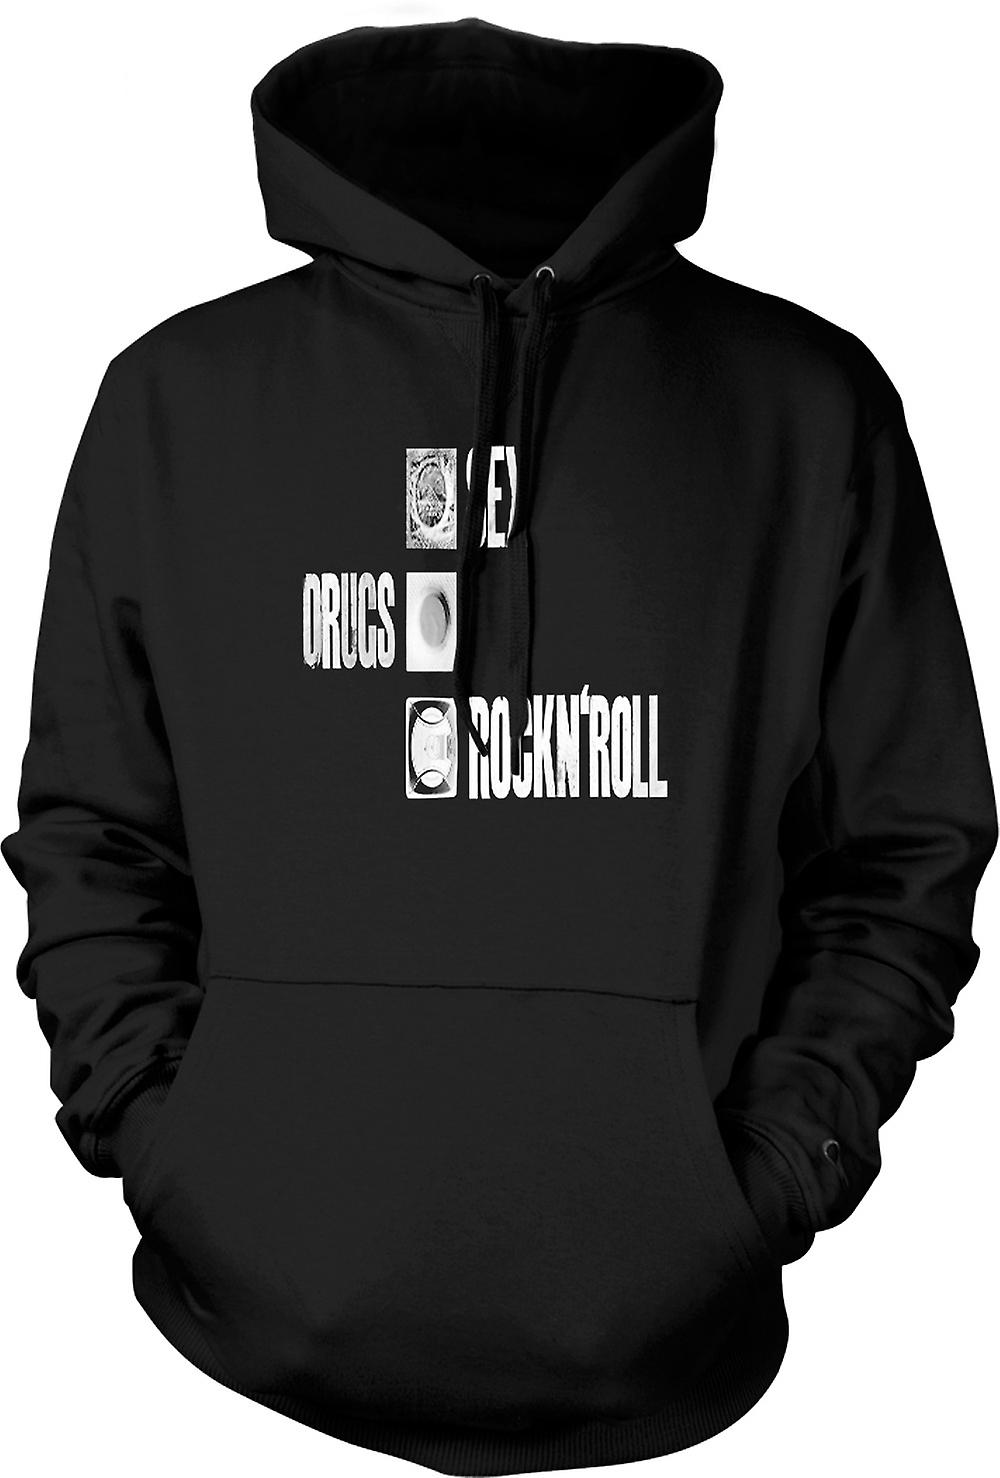 Mens-Hoodie - Sex Drogen Rock n Roll - Kondom